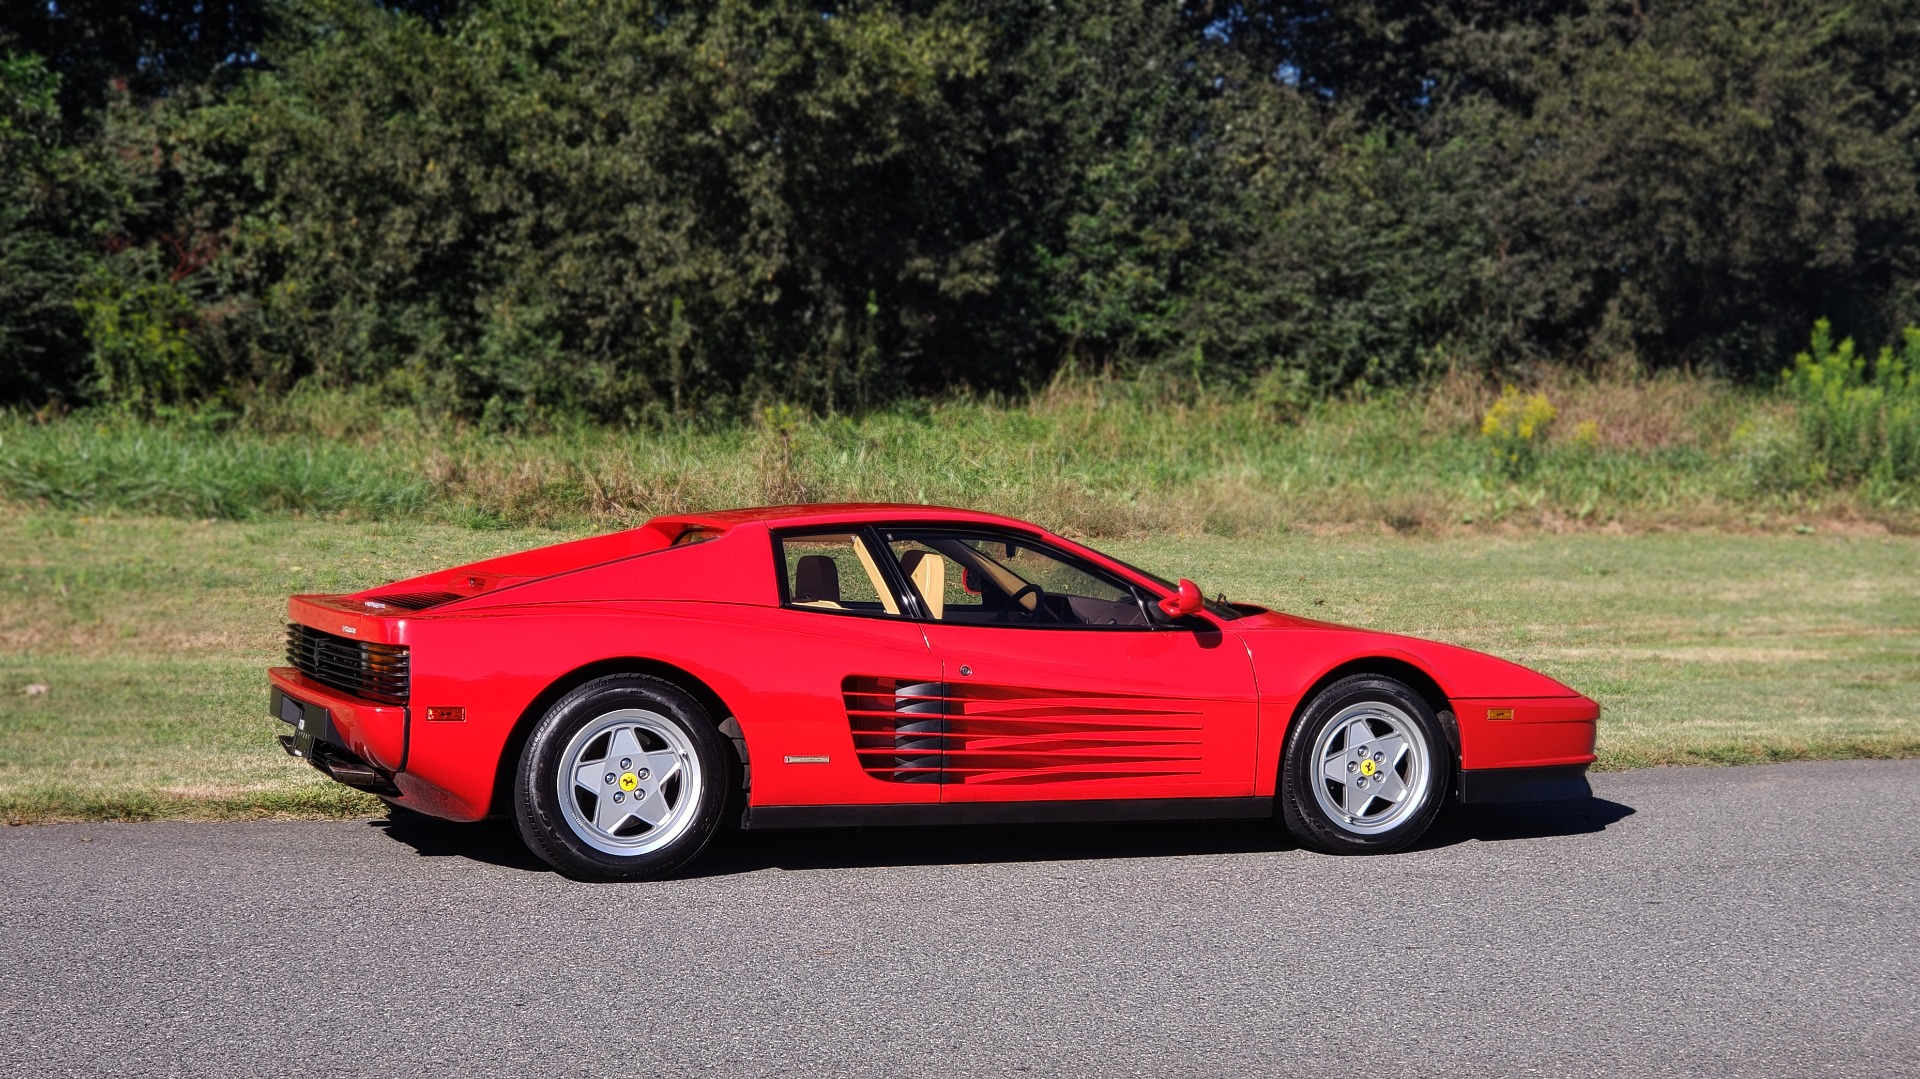 Used 1988 Ferrari TESTAROSSA COUPE / 4.9L FLAT-12 / 5-SPEED MANUAL / LOW MILES SUPER CLEAN for sale $128,999 at Formula Imports in Charlotte NC 28227 10